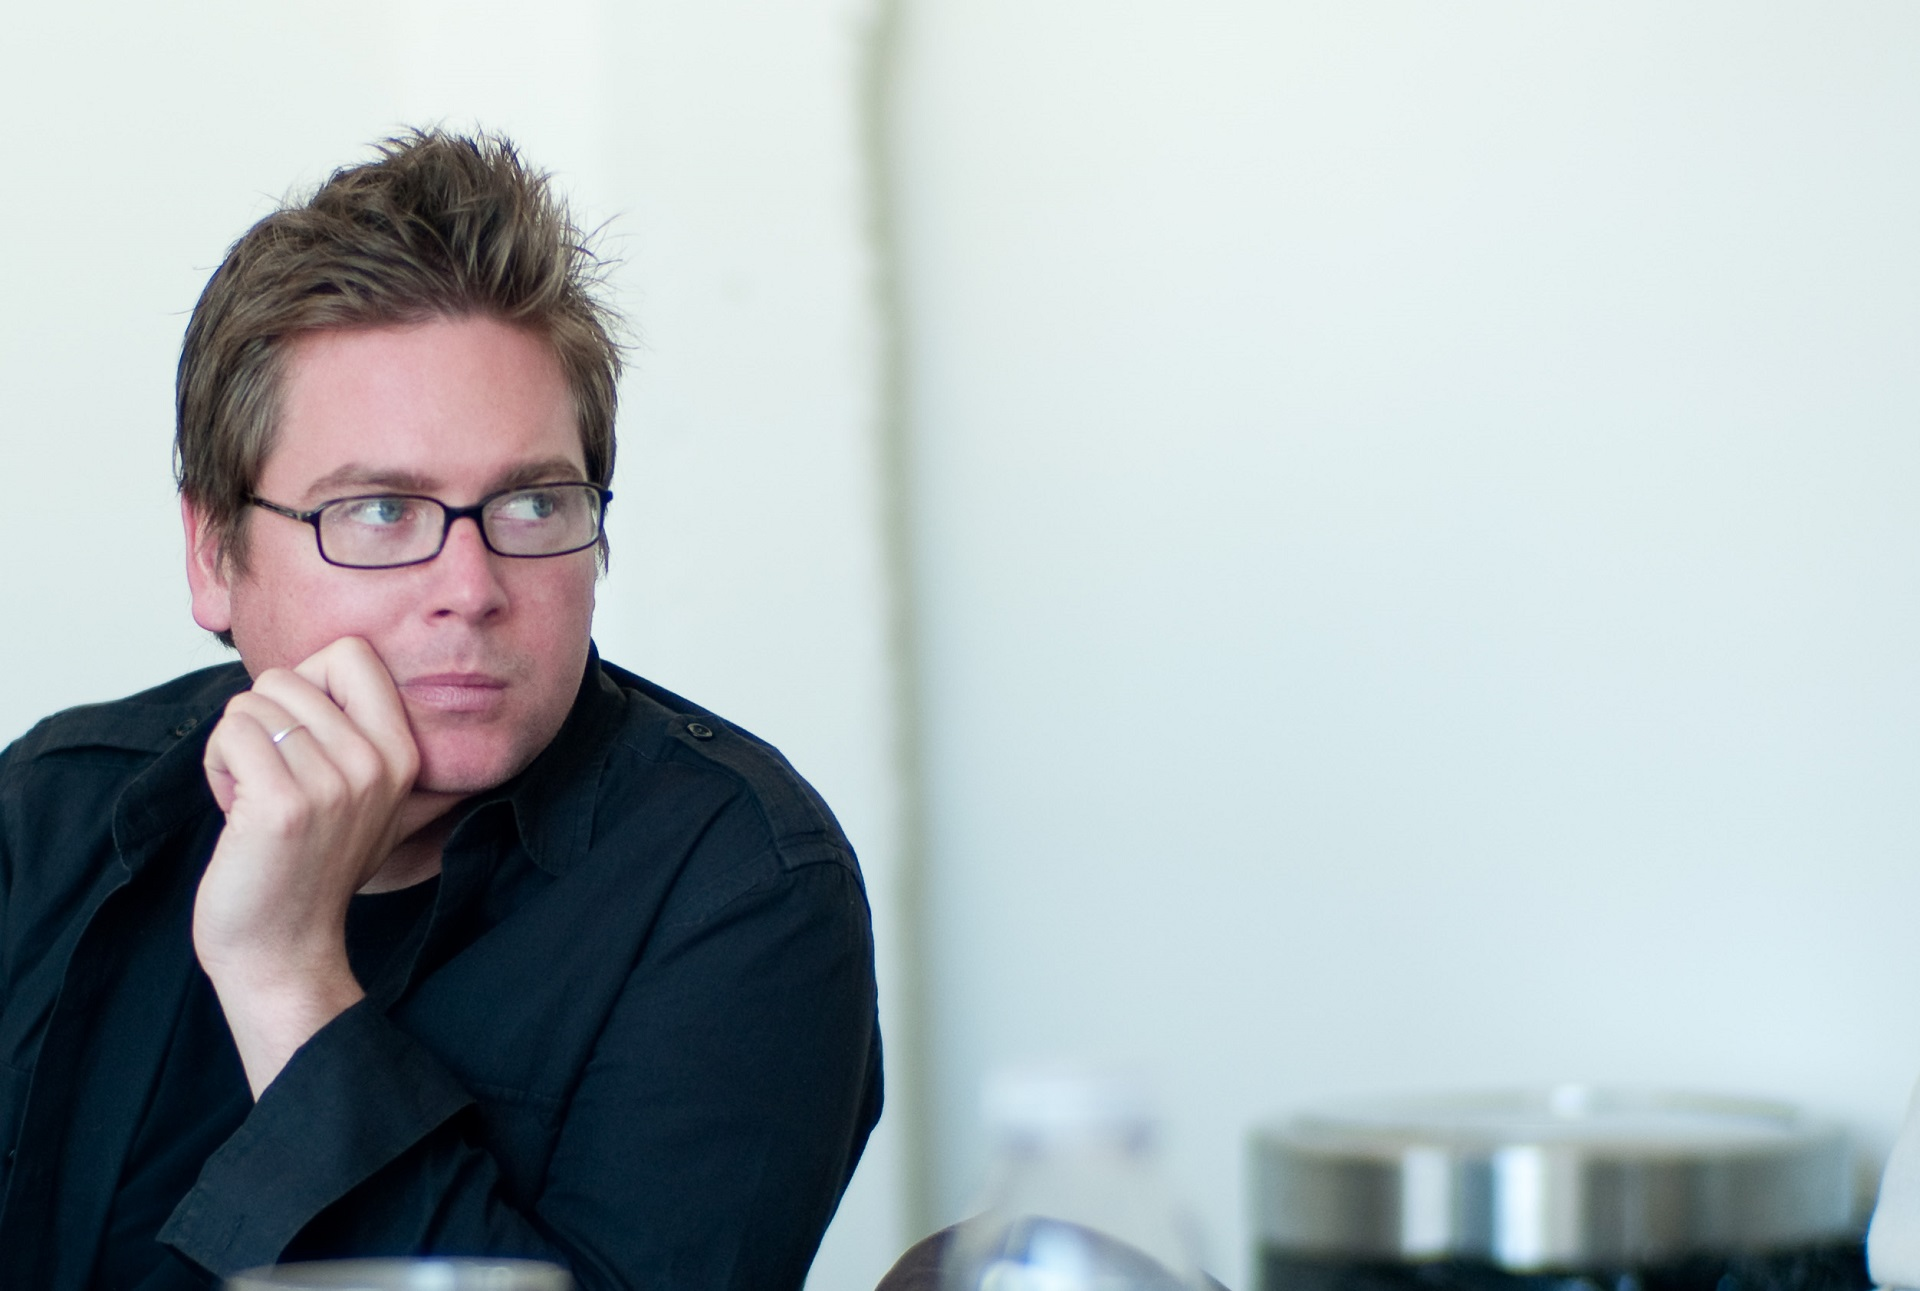 Biz Stone is a vegan